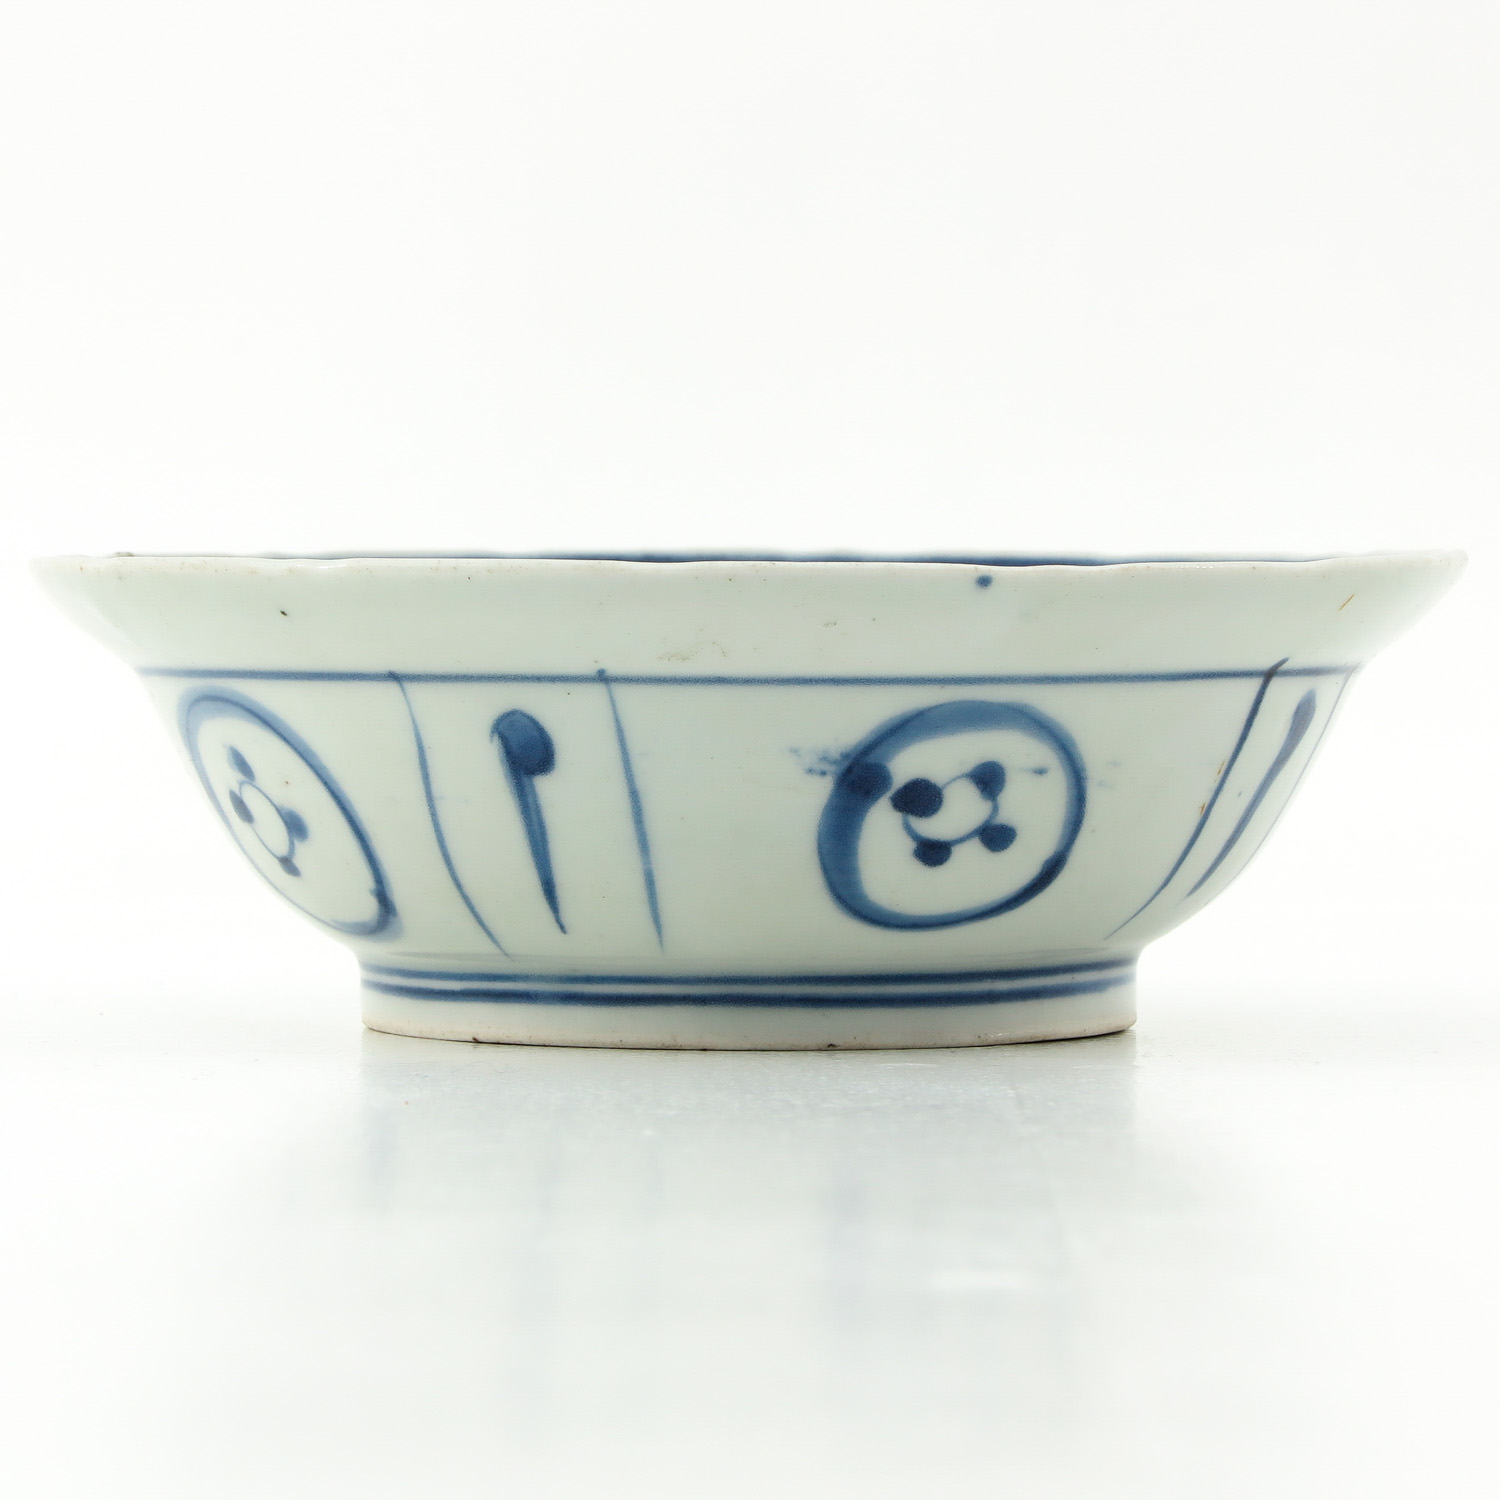 A Blue and White Bowl - Image 4 of 9